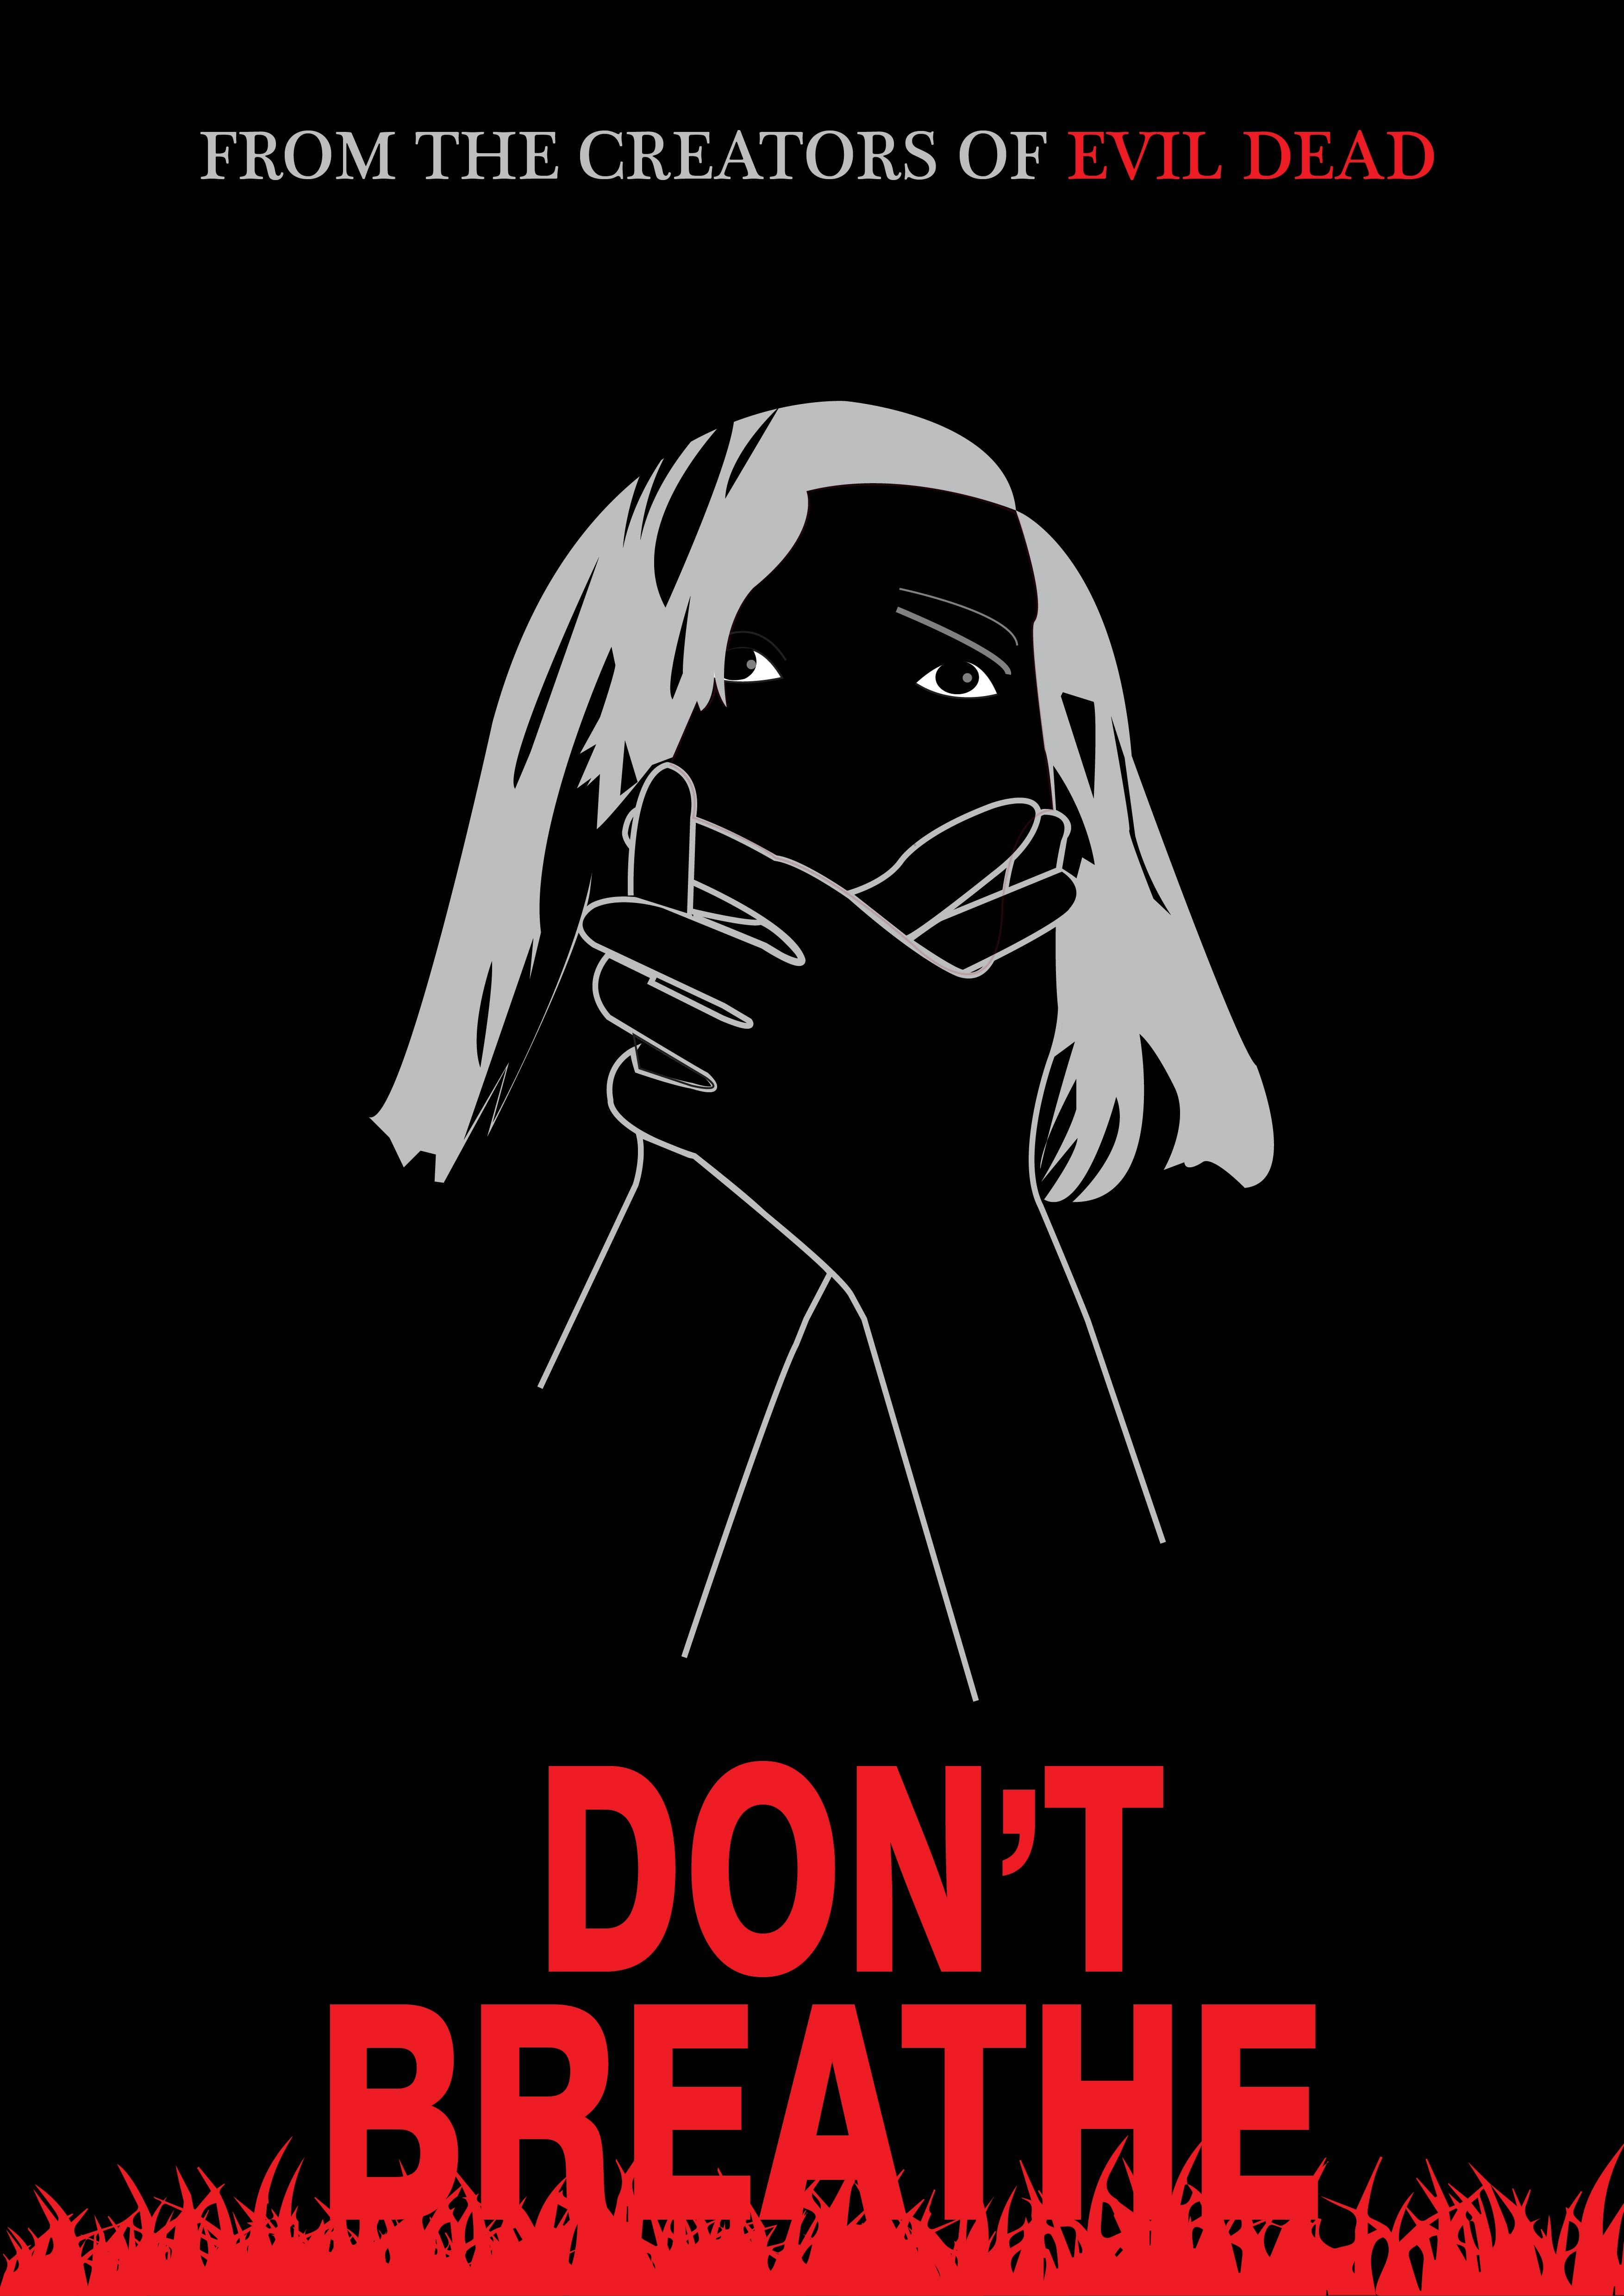 Redesigned Don't Breathe Movie Poster by Silvia W